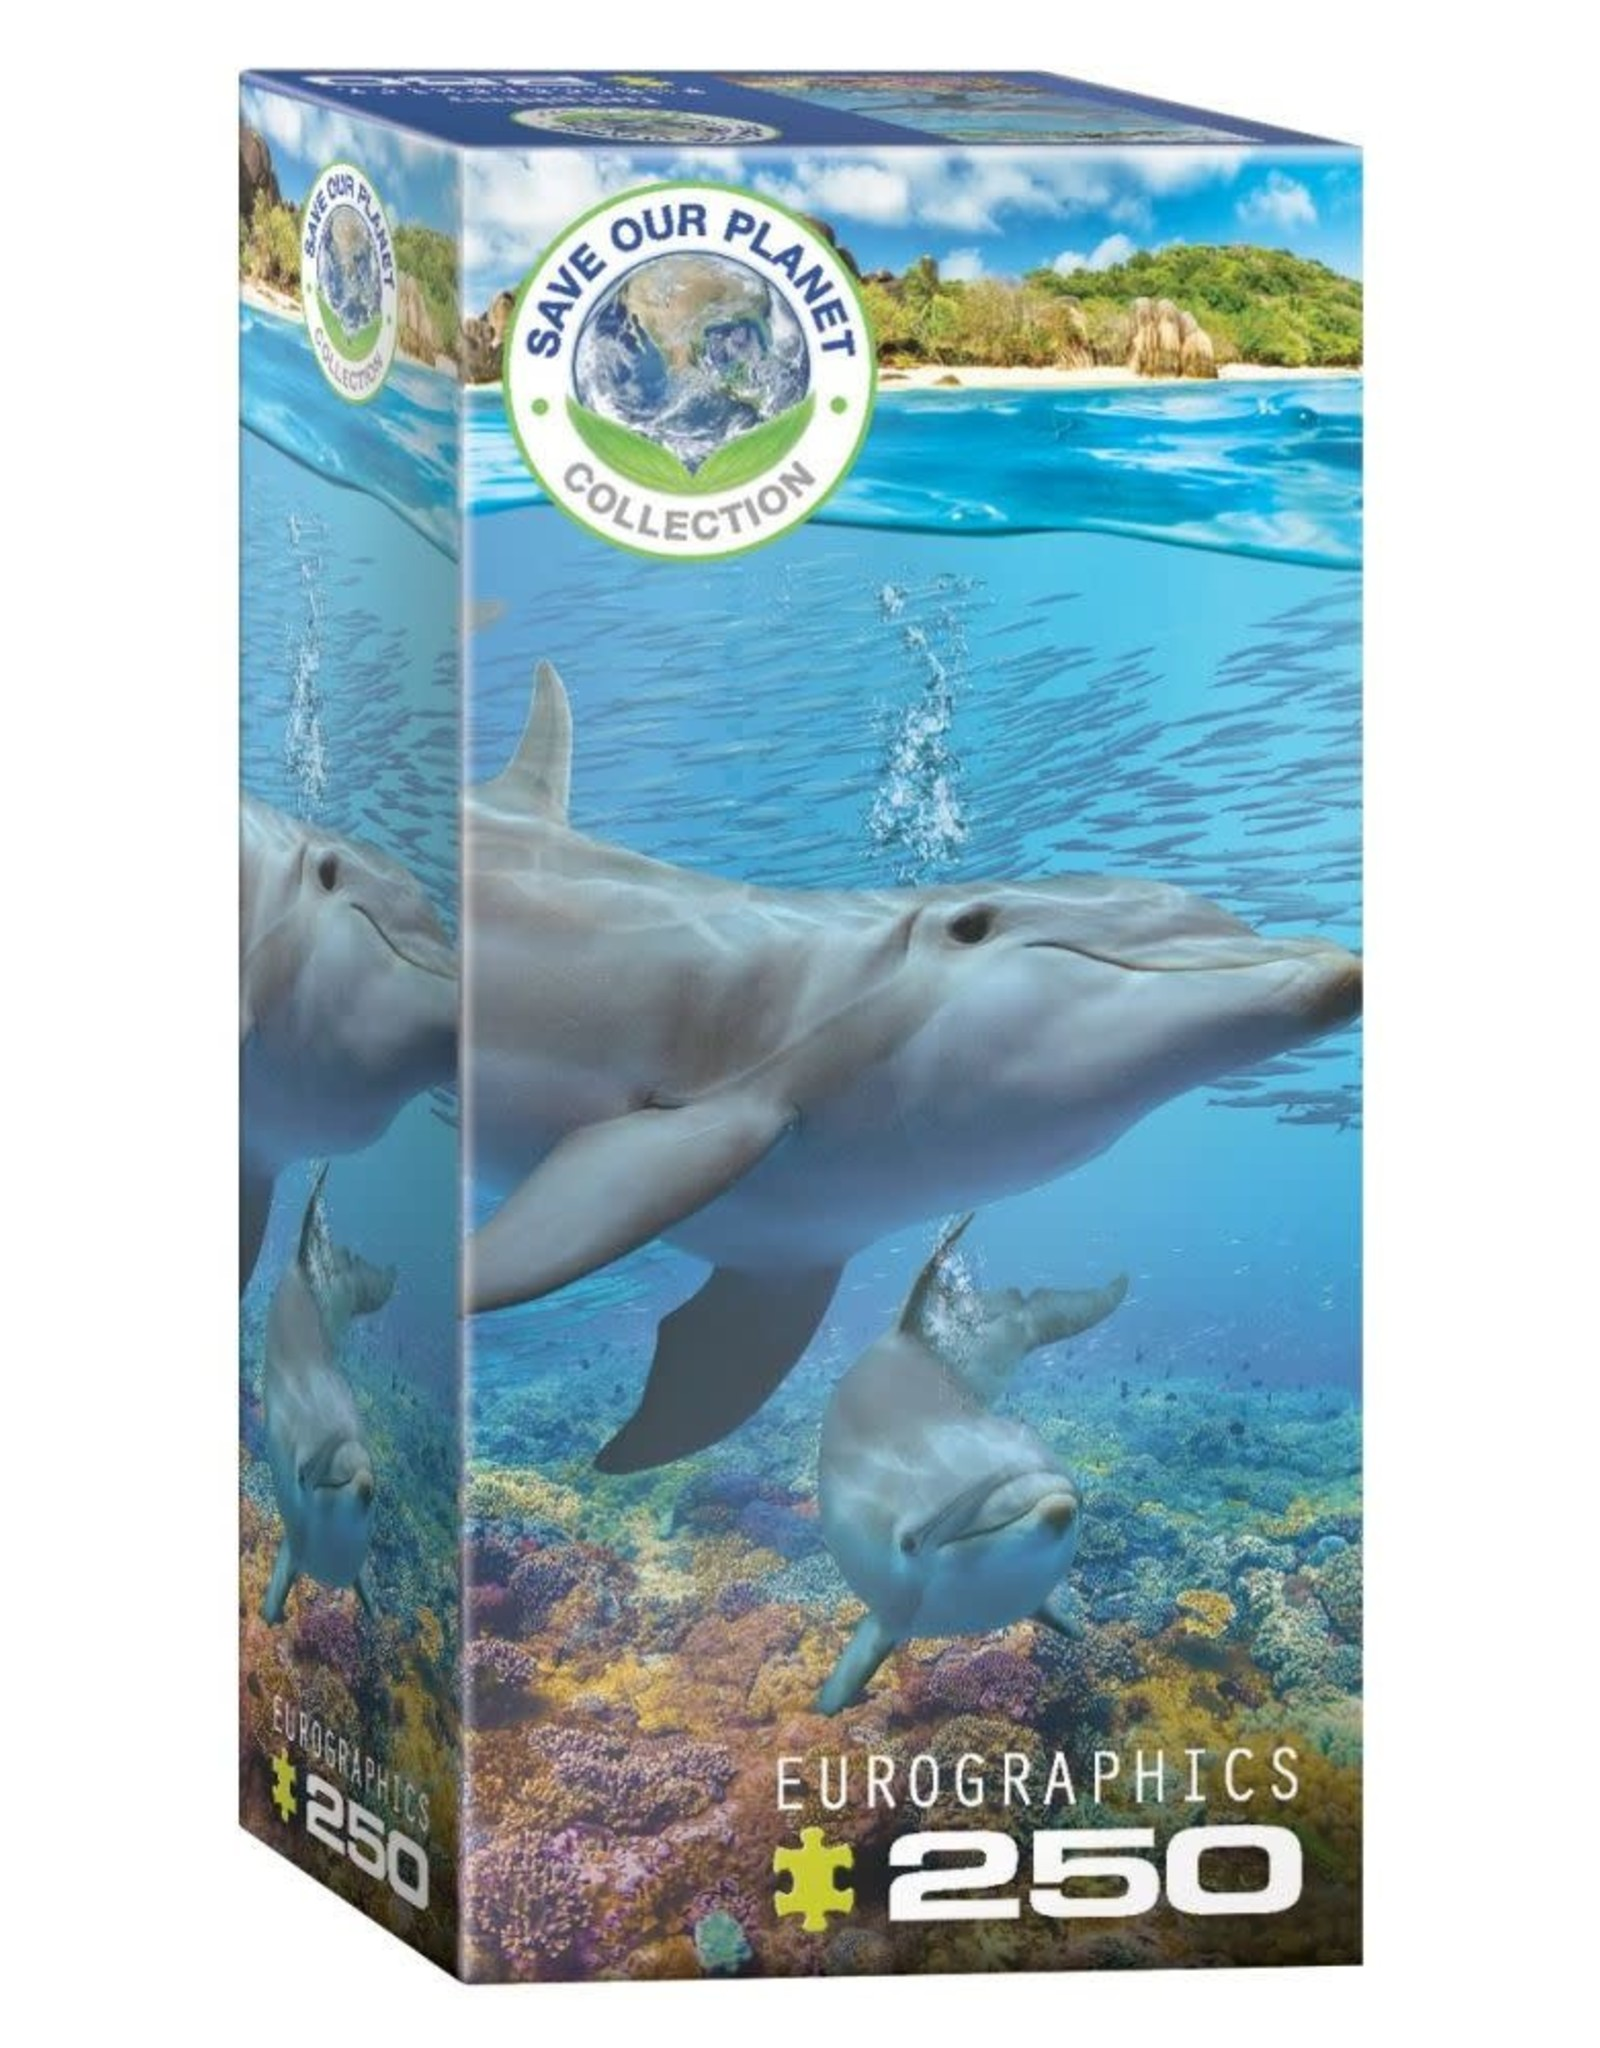 Eurographics Dolphins 250pc